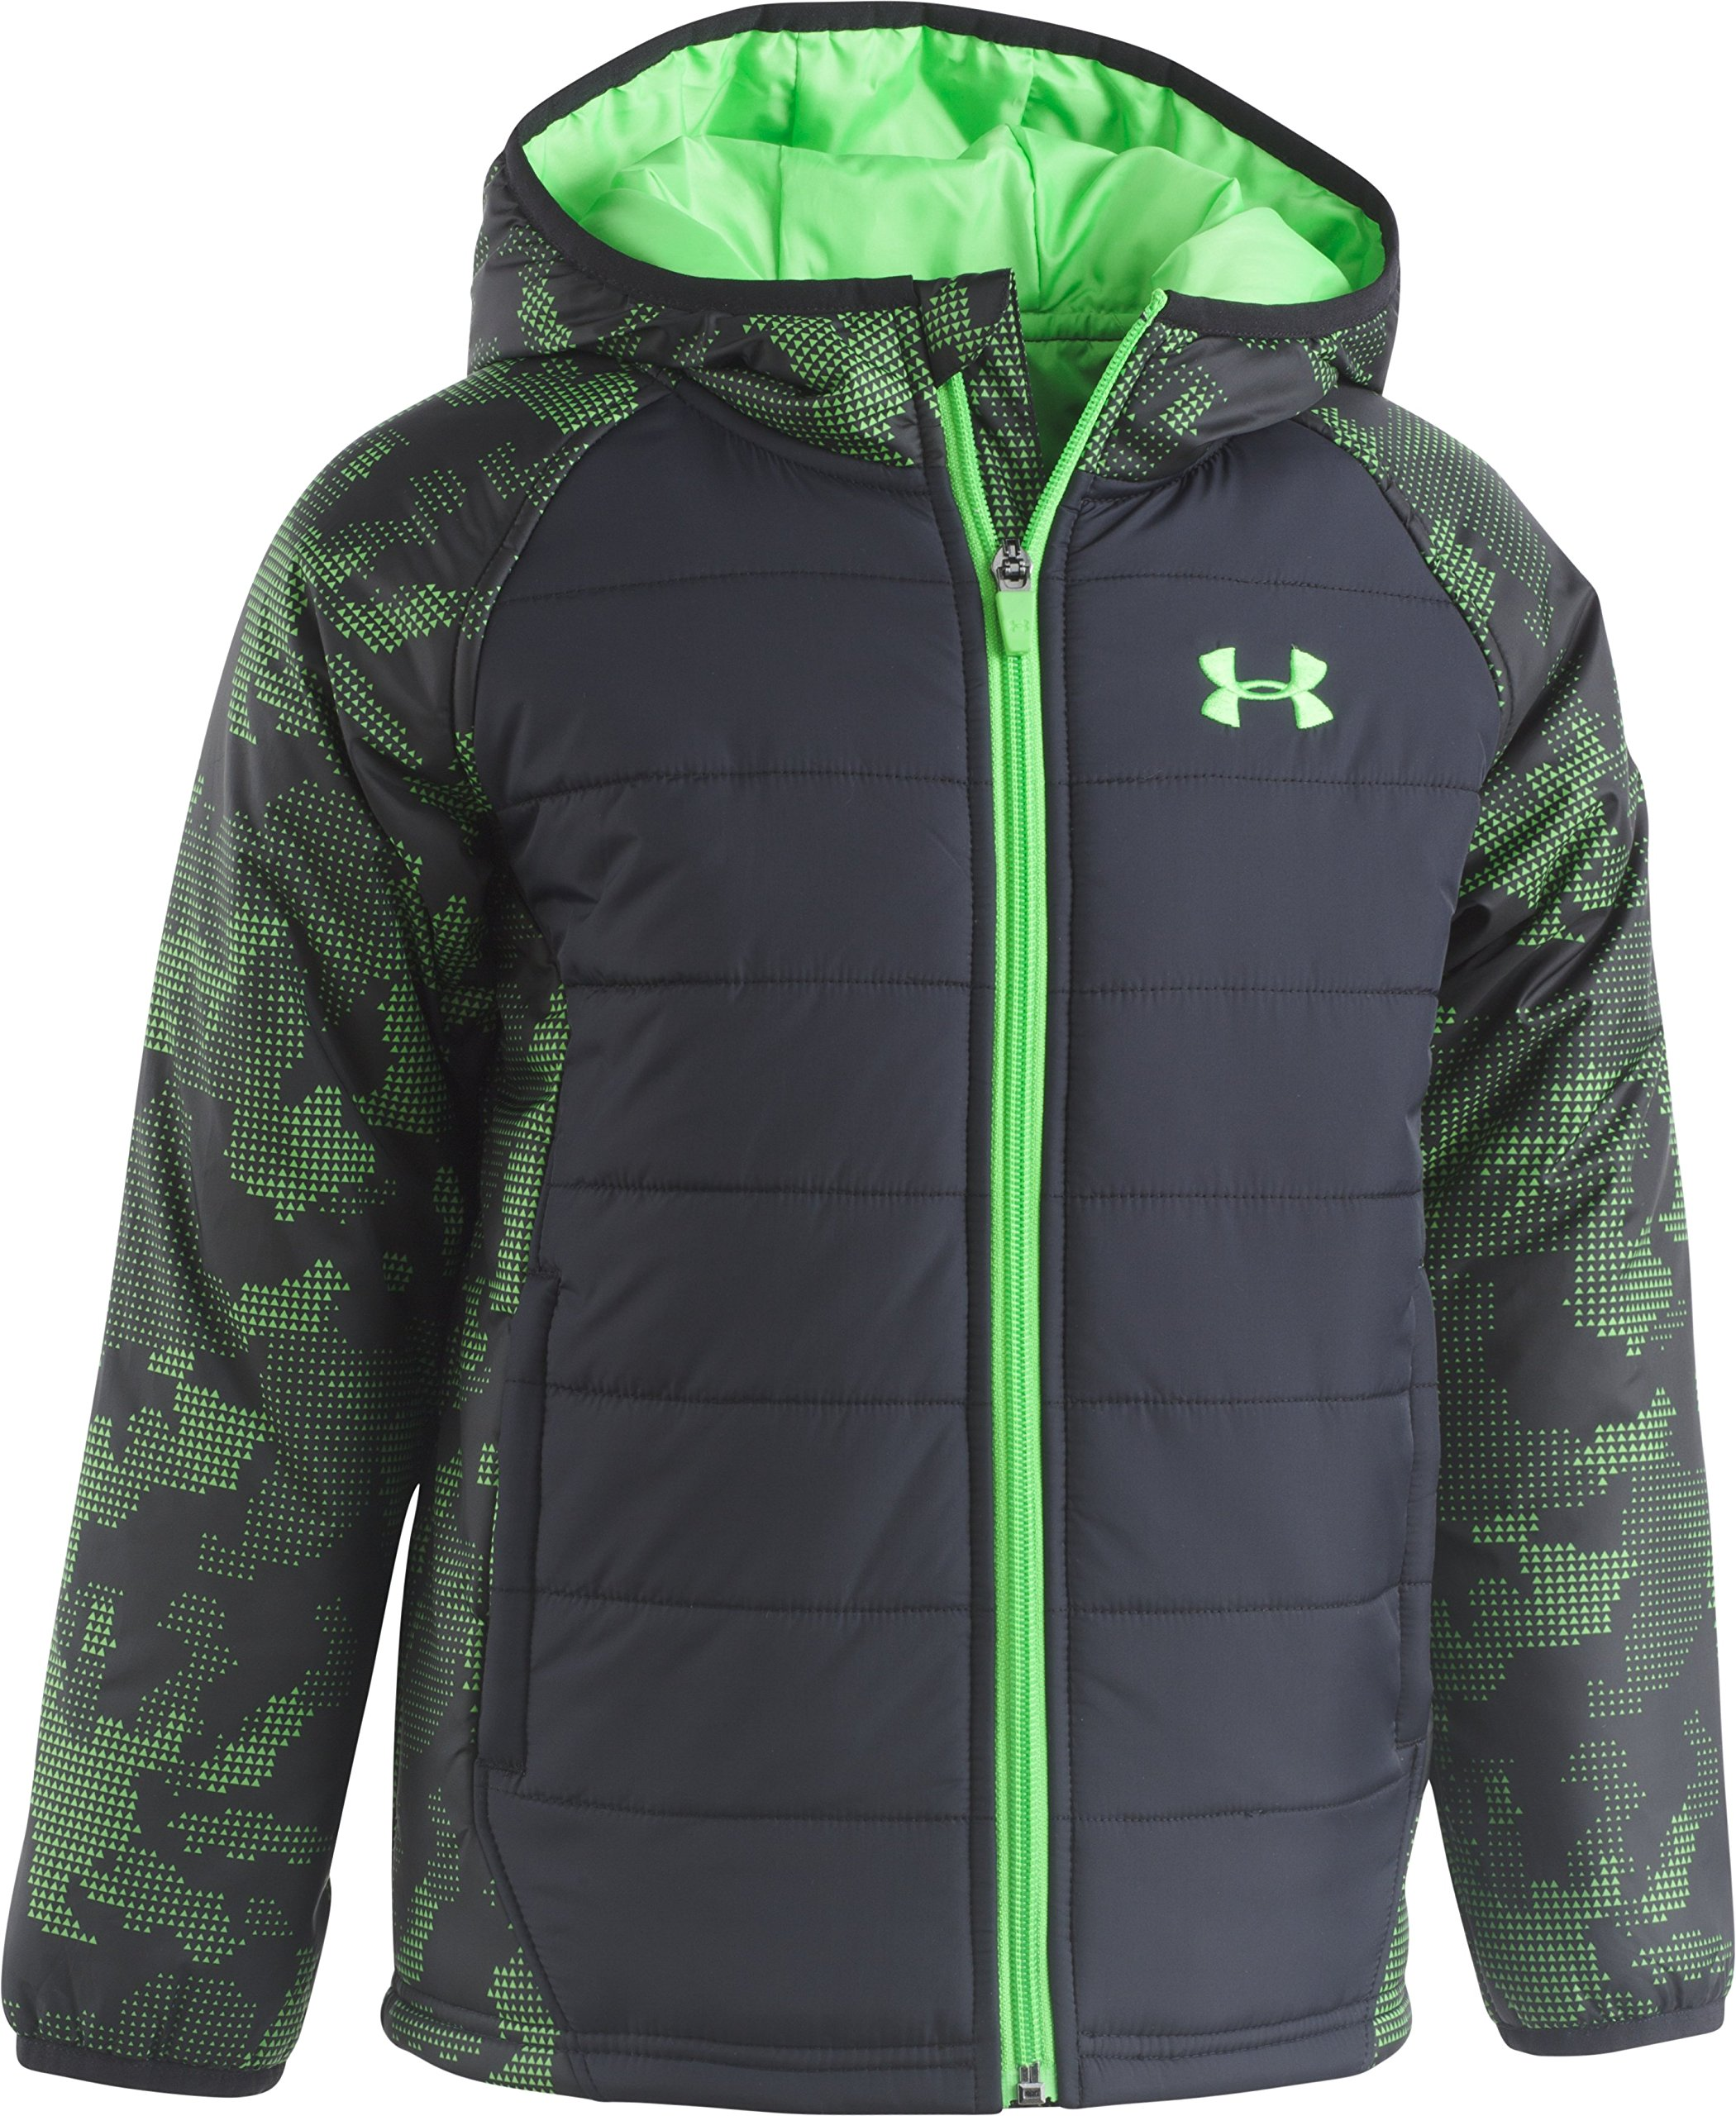 Under Armour Boys' Toddler Utility Werewolf Puffer Jacket, Camo Black, 2T